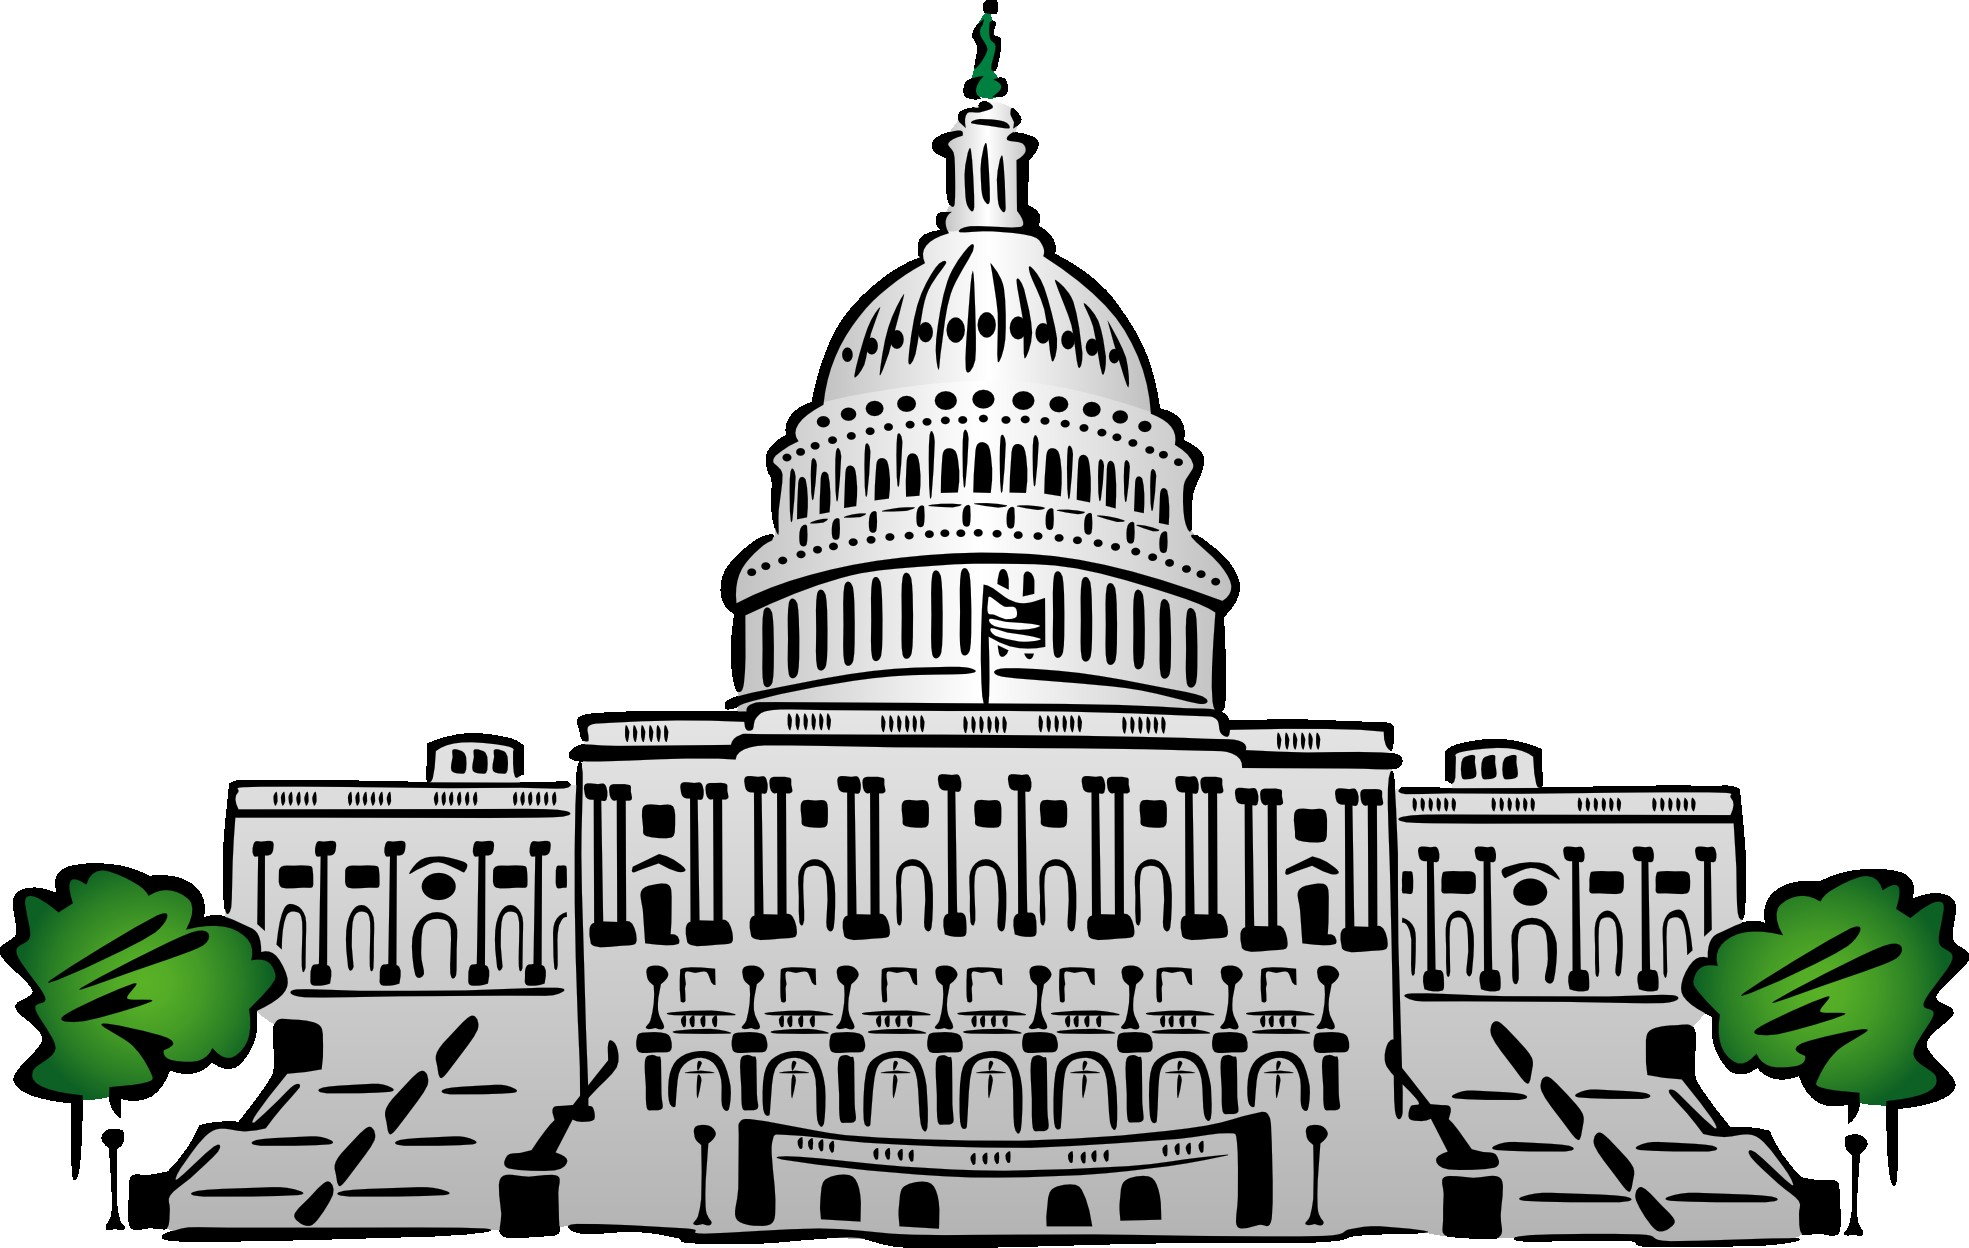 Clipart of the white house in washington d c image free stock Clipart Of The White House In Washington Dc | Clip Art image free stock